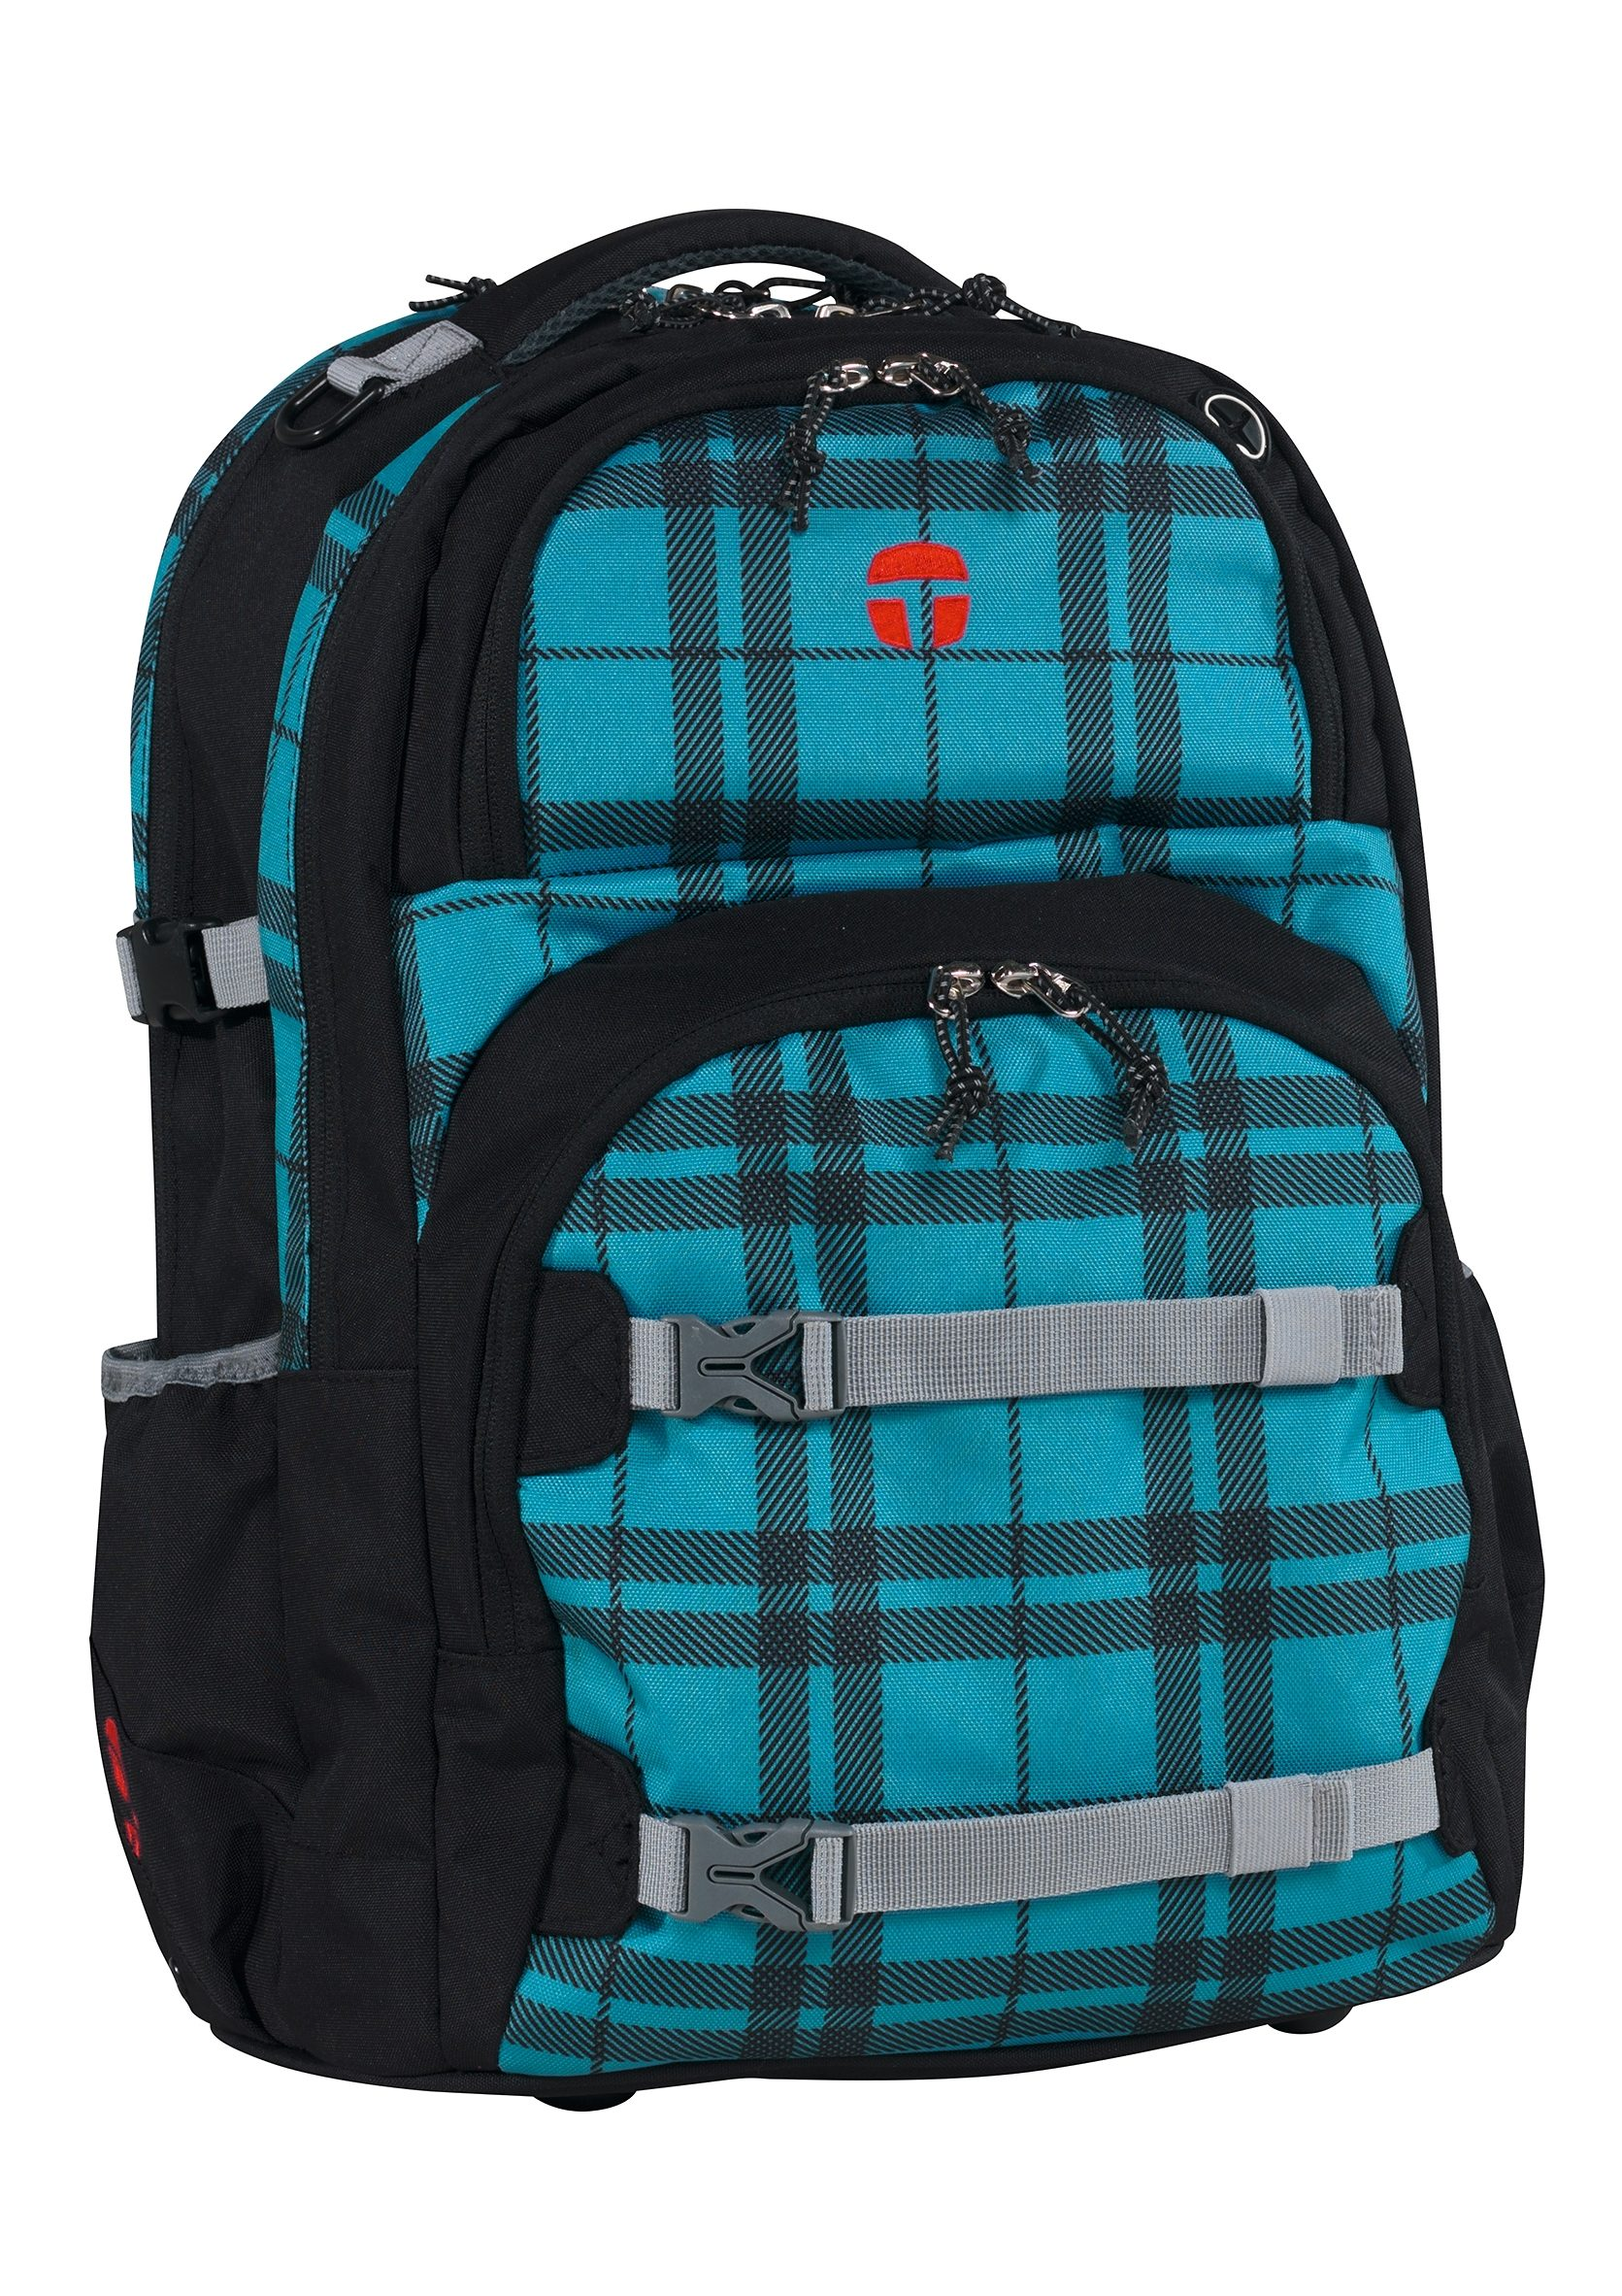 TAKE IT EASY® Größenverstellbarer Rucksack, »Oslo-Flex Scotch Turquoise«